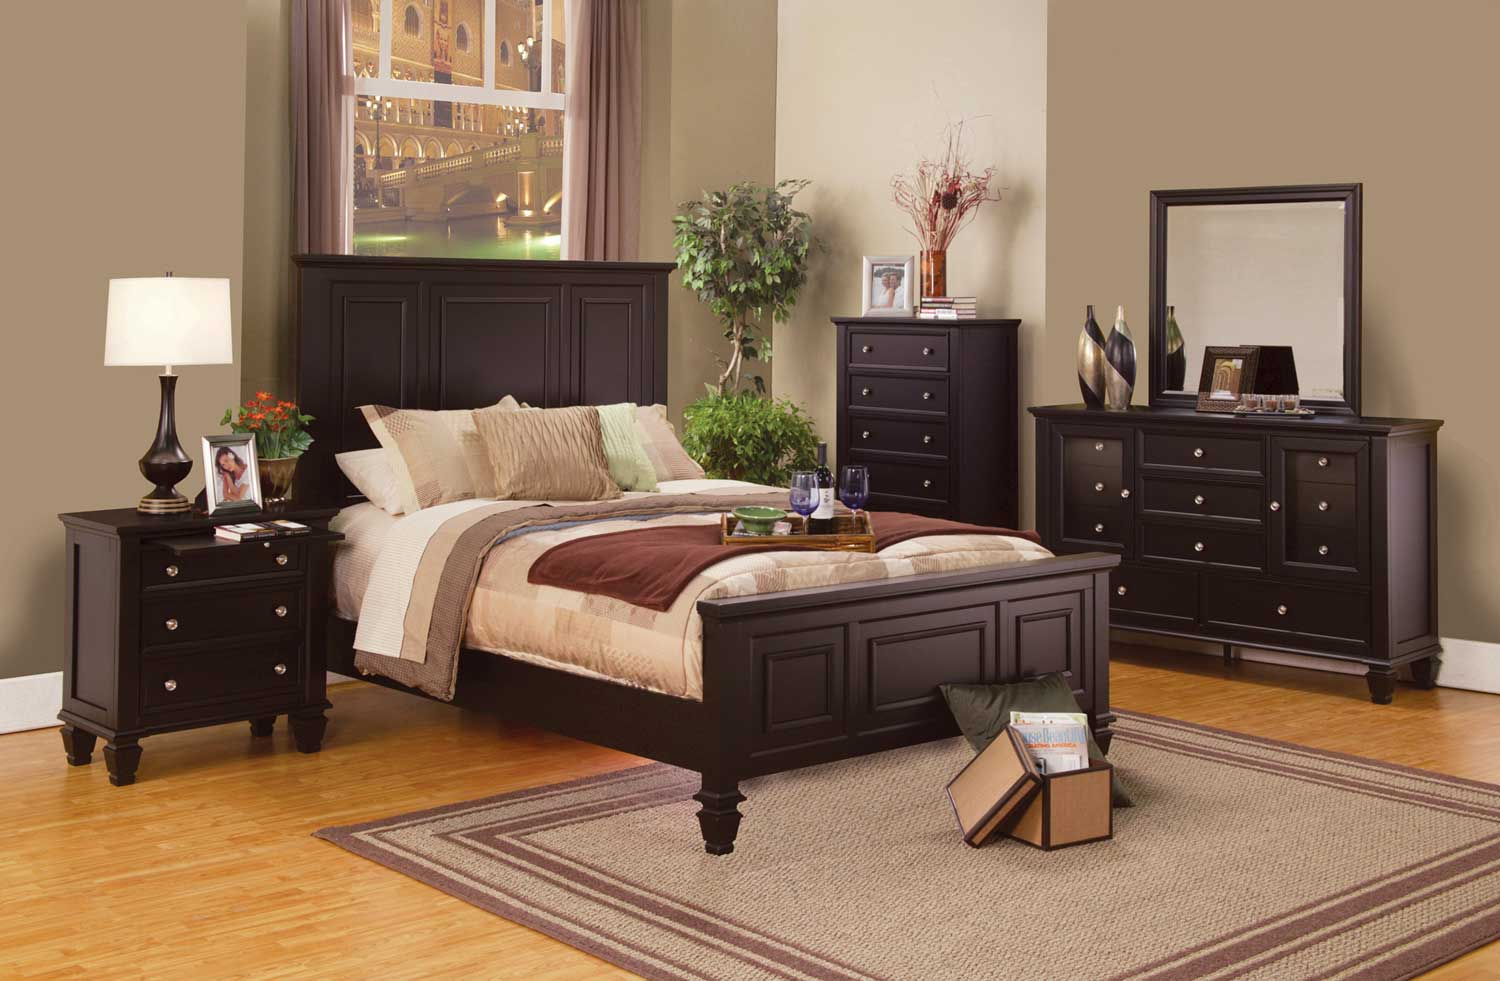 Coaster Sandy Beach Panel Bedroom Set Cappuccino Panel BedSet at Hom